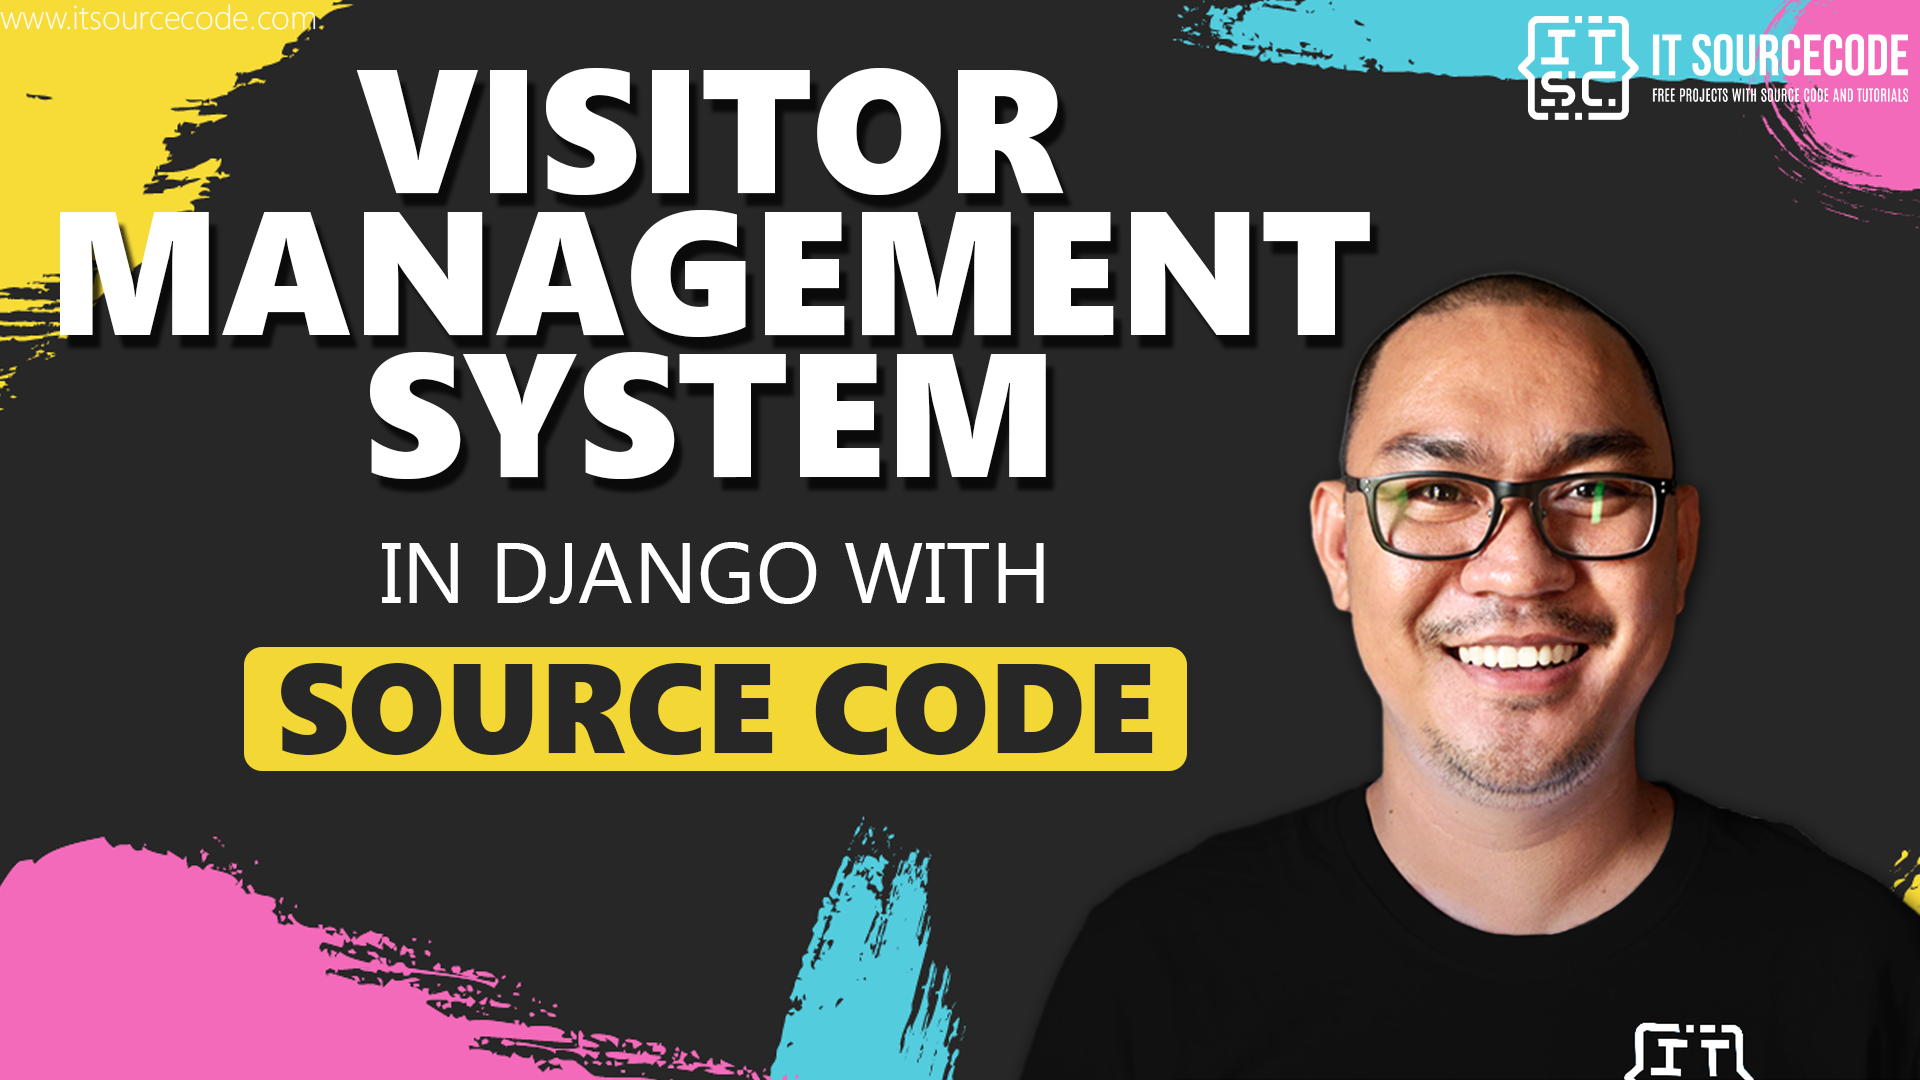 Visitor Management System in Django with Source Code 2021